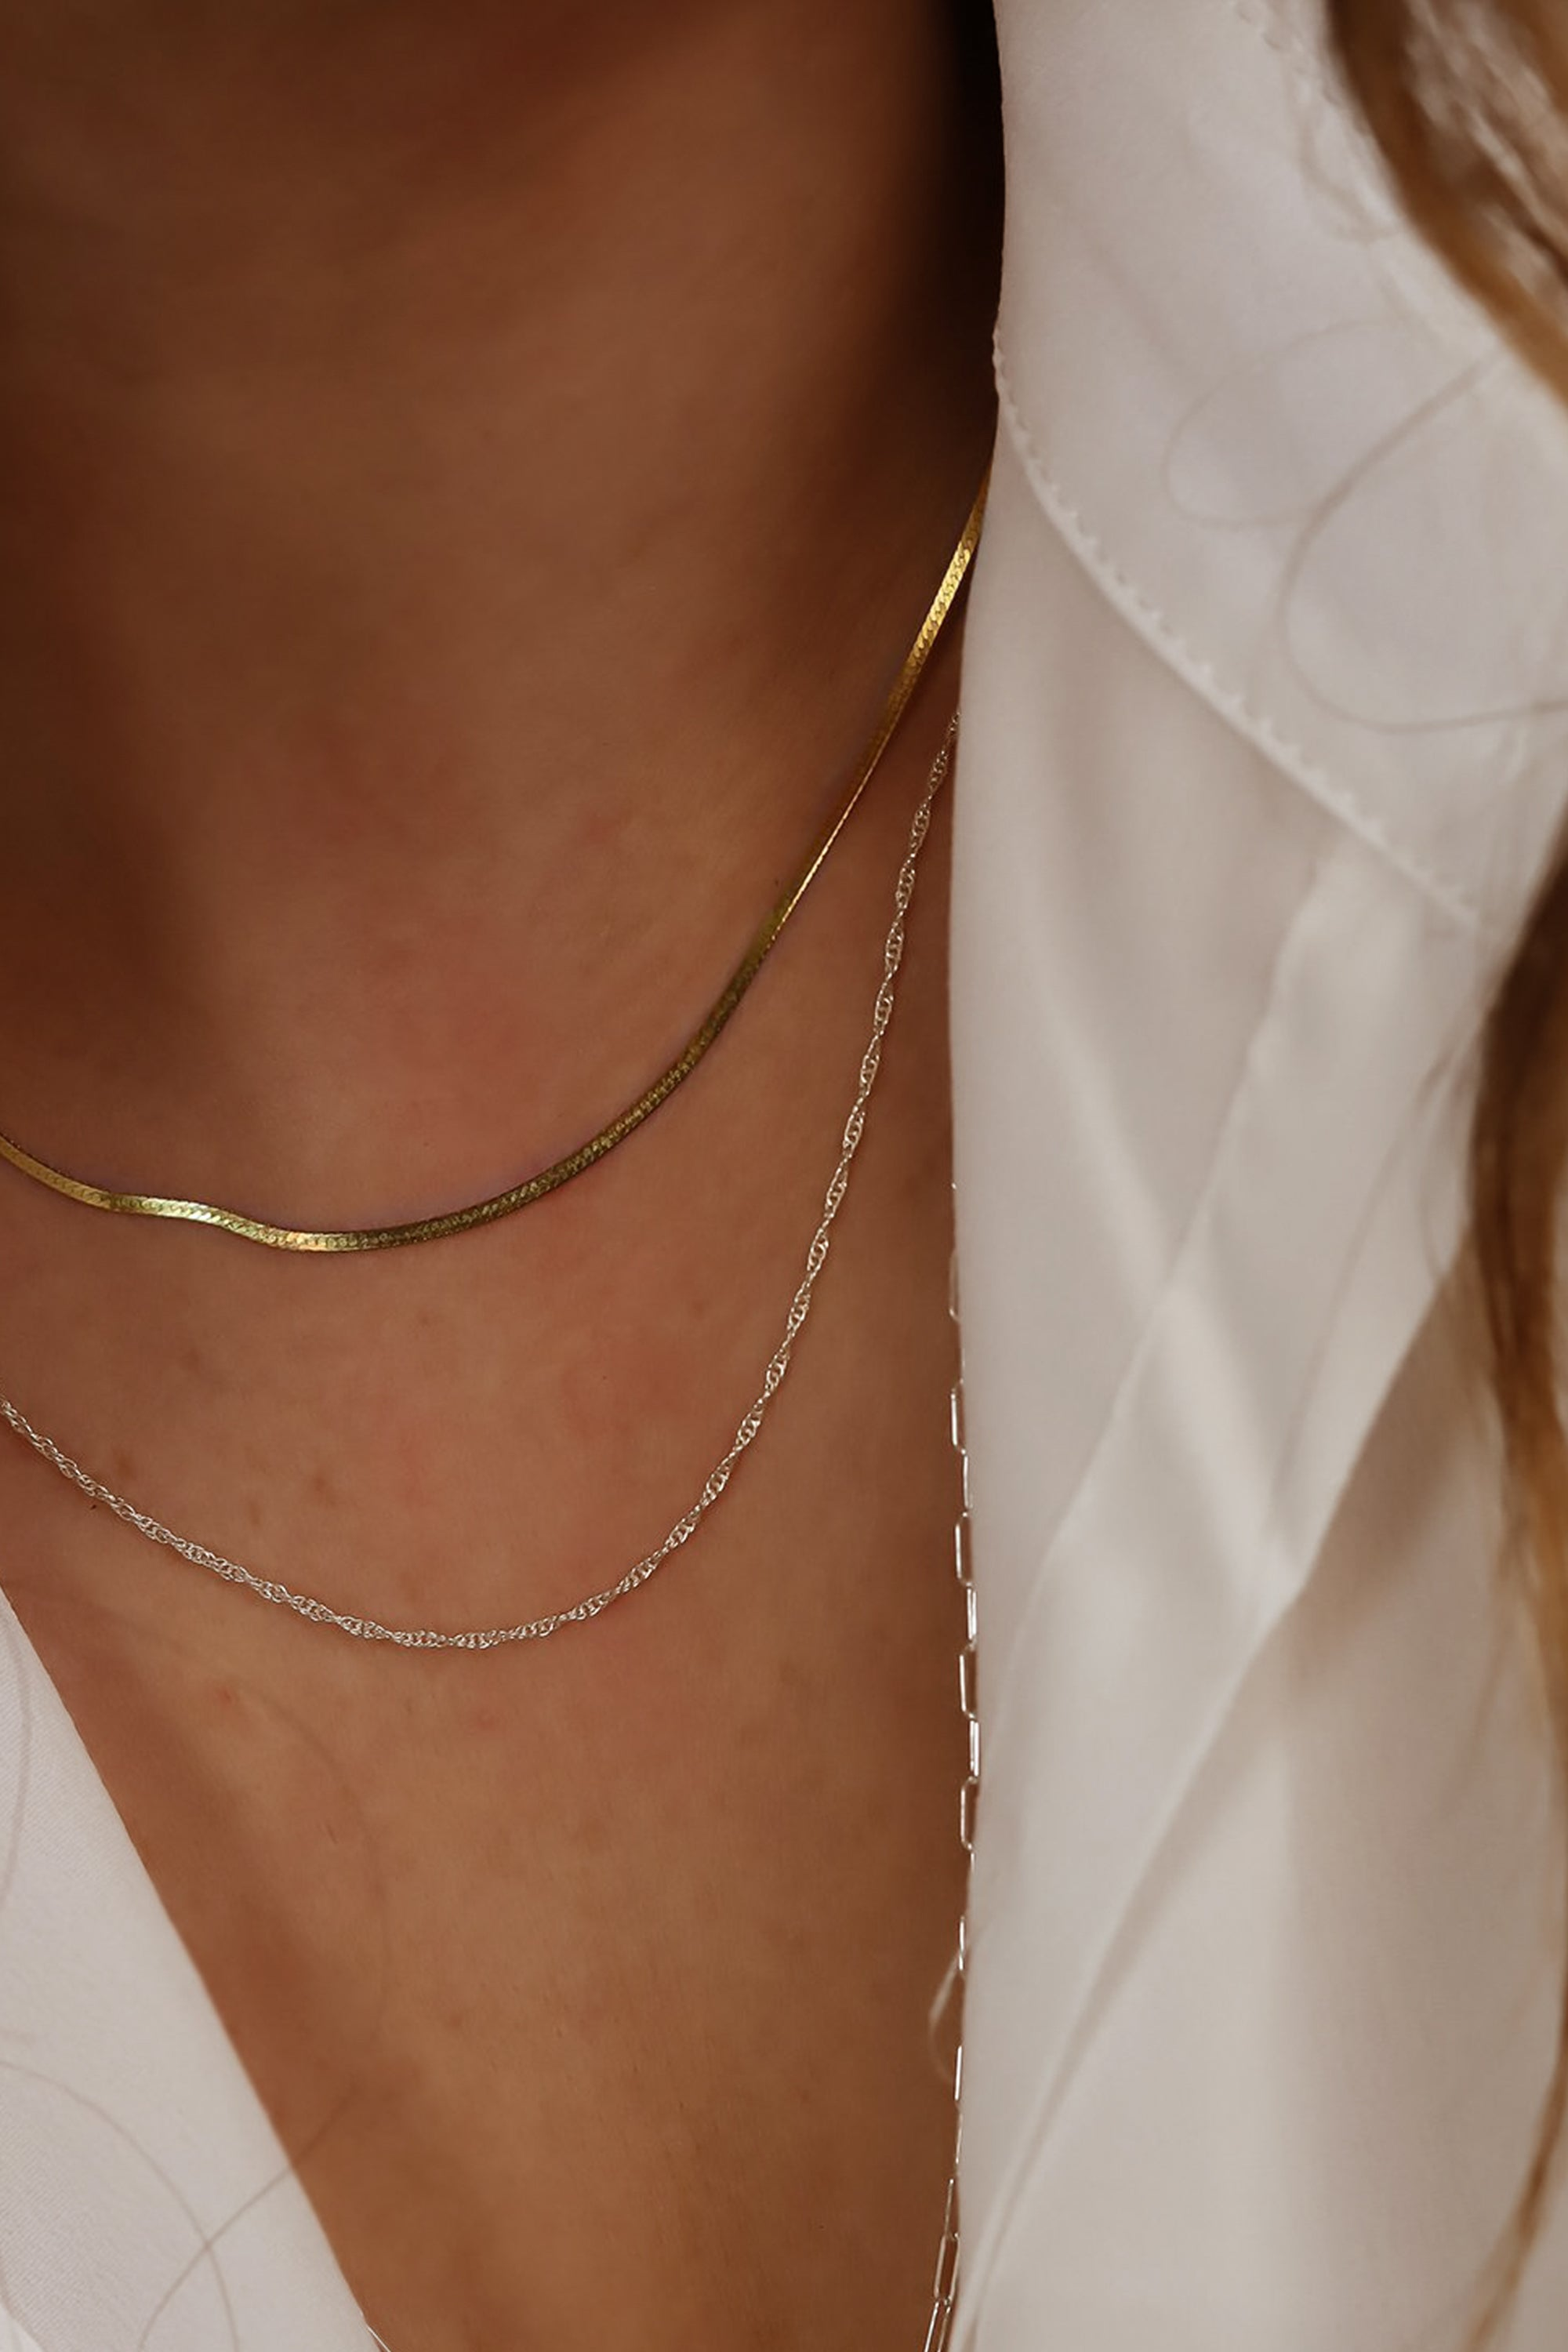 simple-gold-jewelry-solid-14k-gold-herringbone-necklace